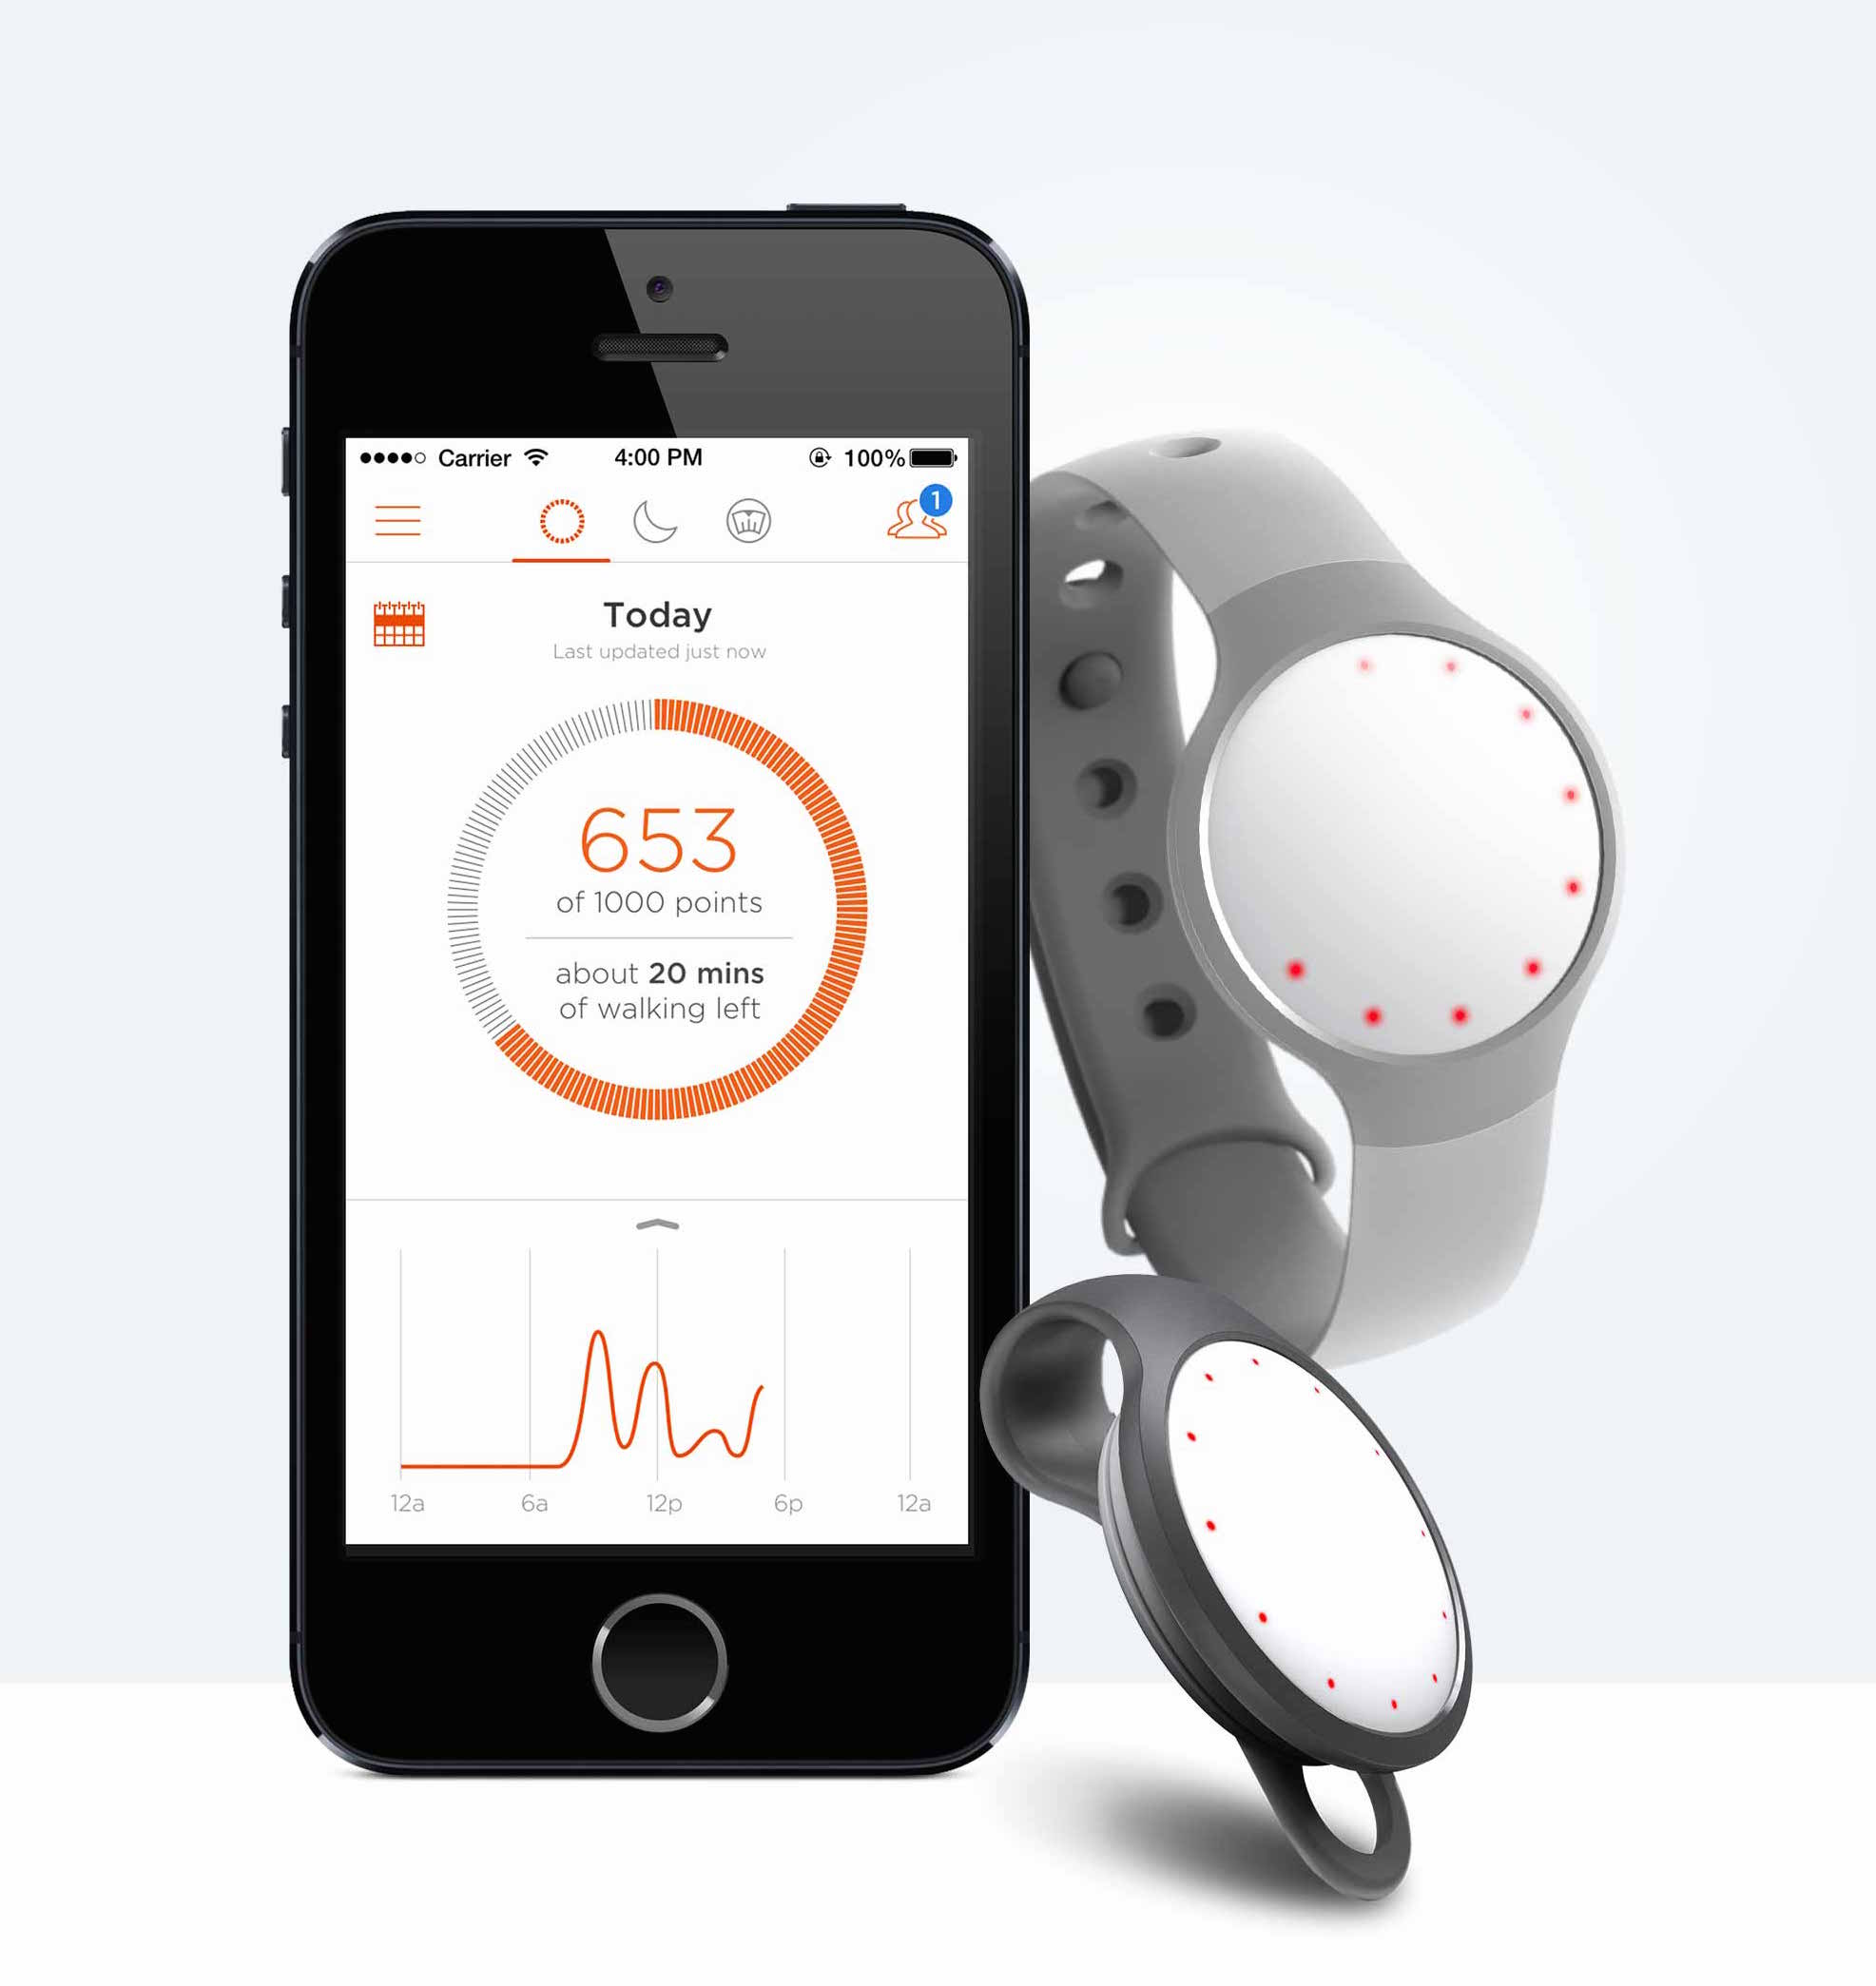 Upping Your Fitness & Nutrition Game? There's a Tracker (And an App) For That.